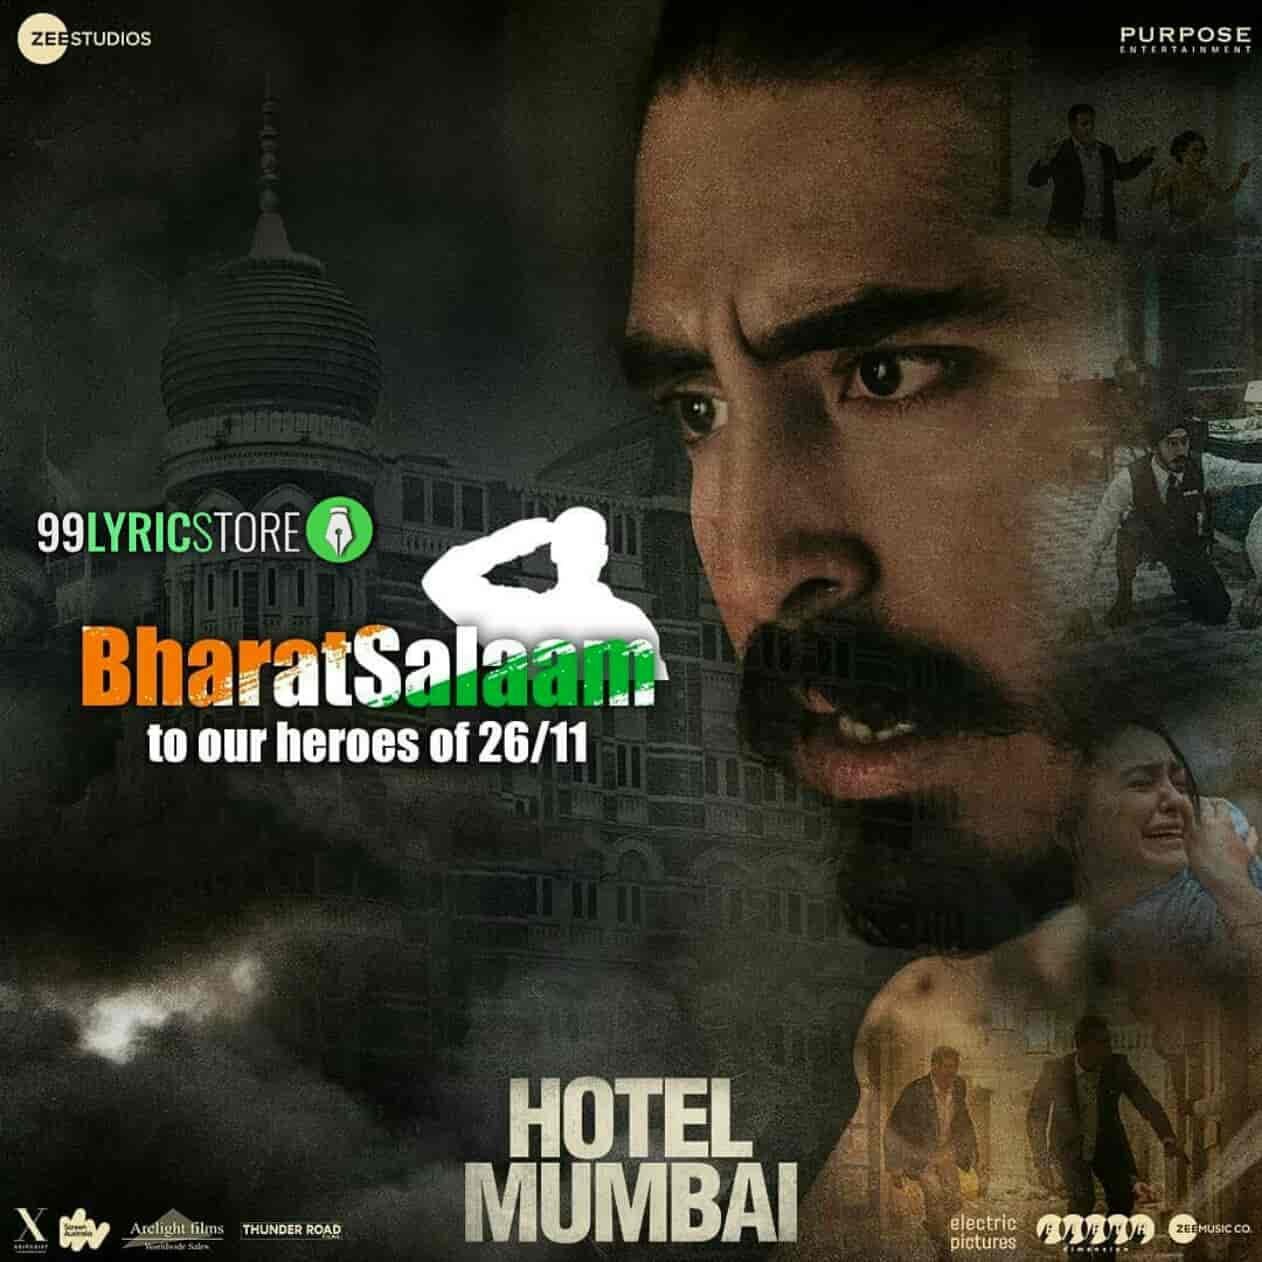 The song 'Bharat Salaam' from the movie 'Hotel Mumbai' has sung by B Praak and Sunidhi Chauhan, composed and Written by Mithoon. This song presented by Zee Music Company label.